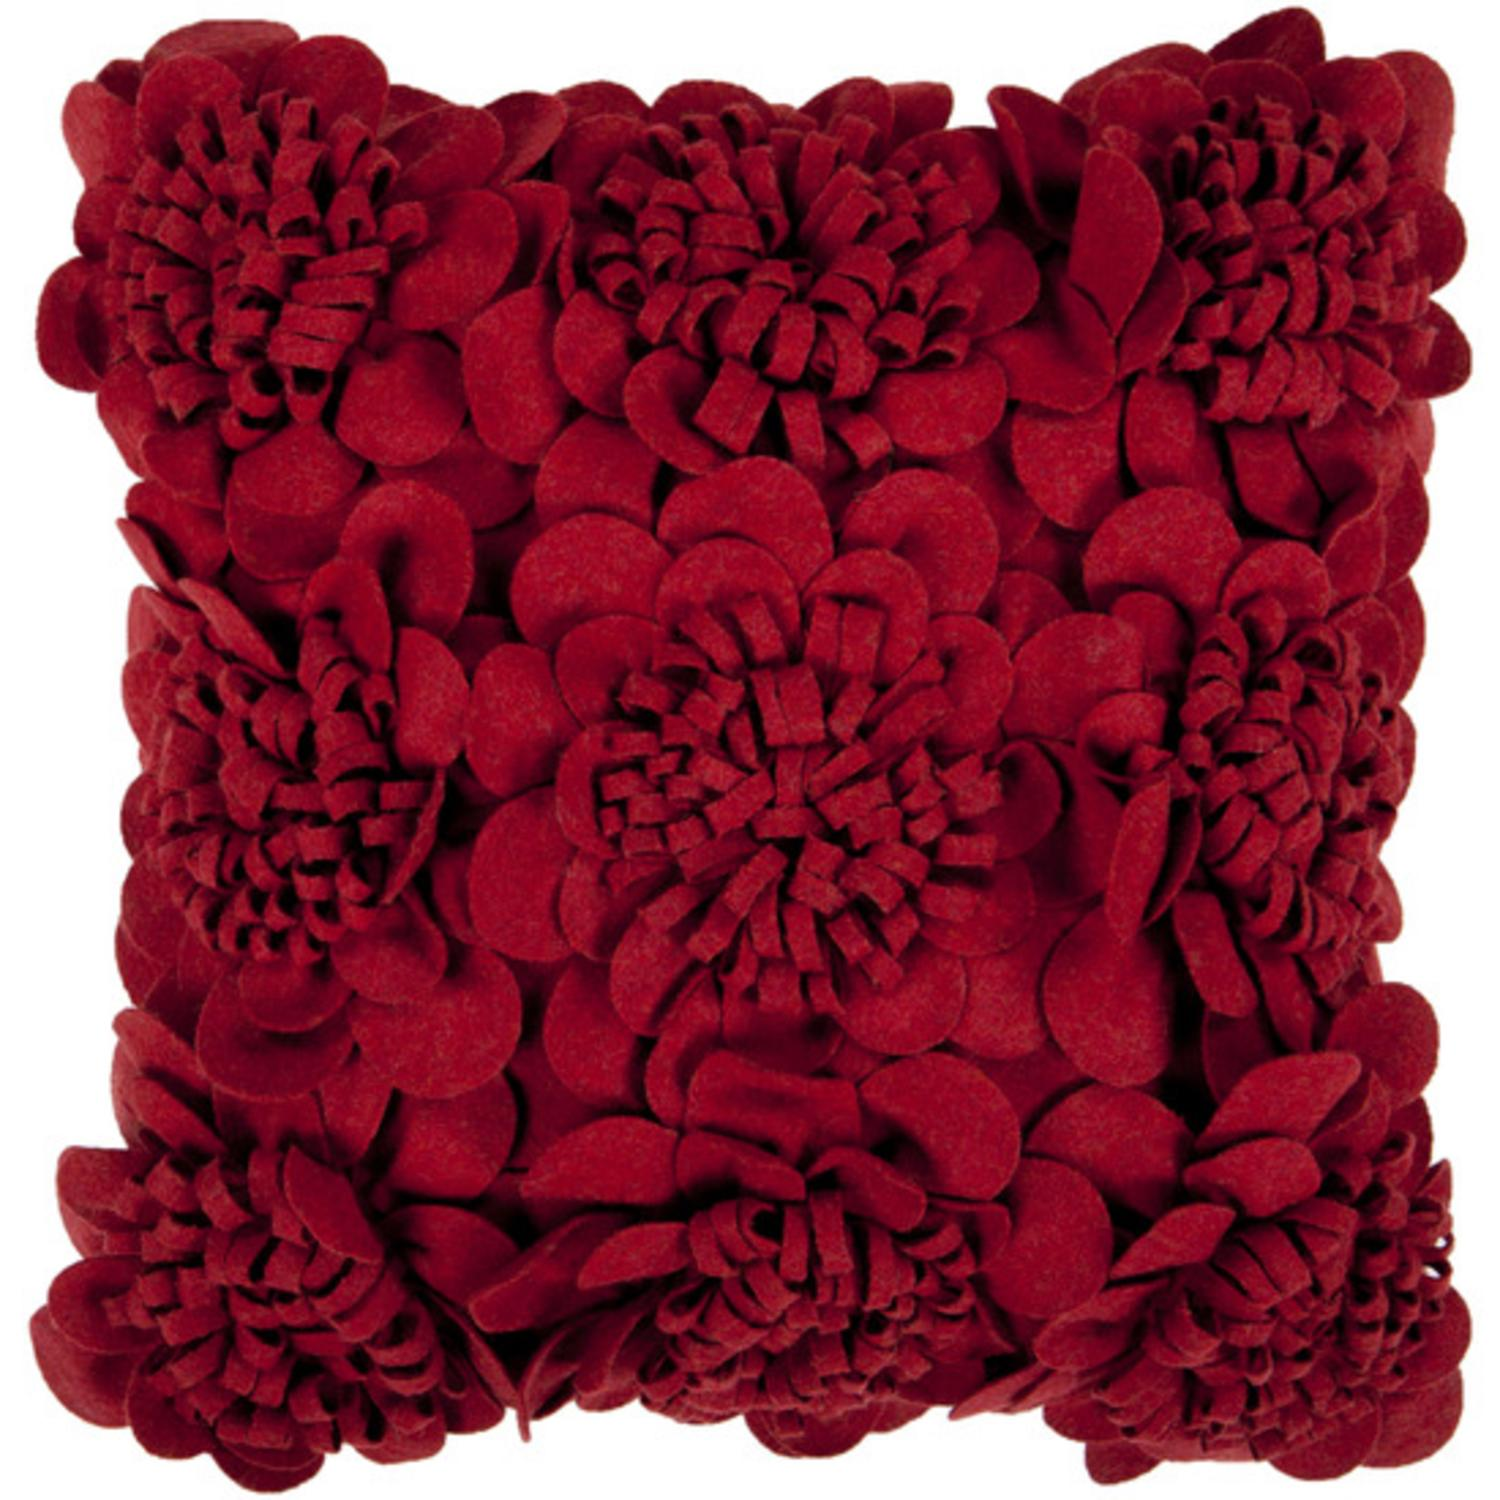 "22"" Dark Maroon Red Dimensional Applique Mums Decorative Throw Pillow"